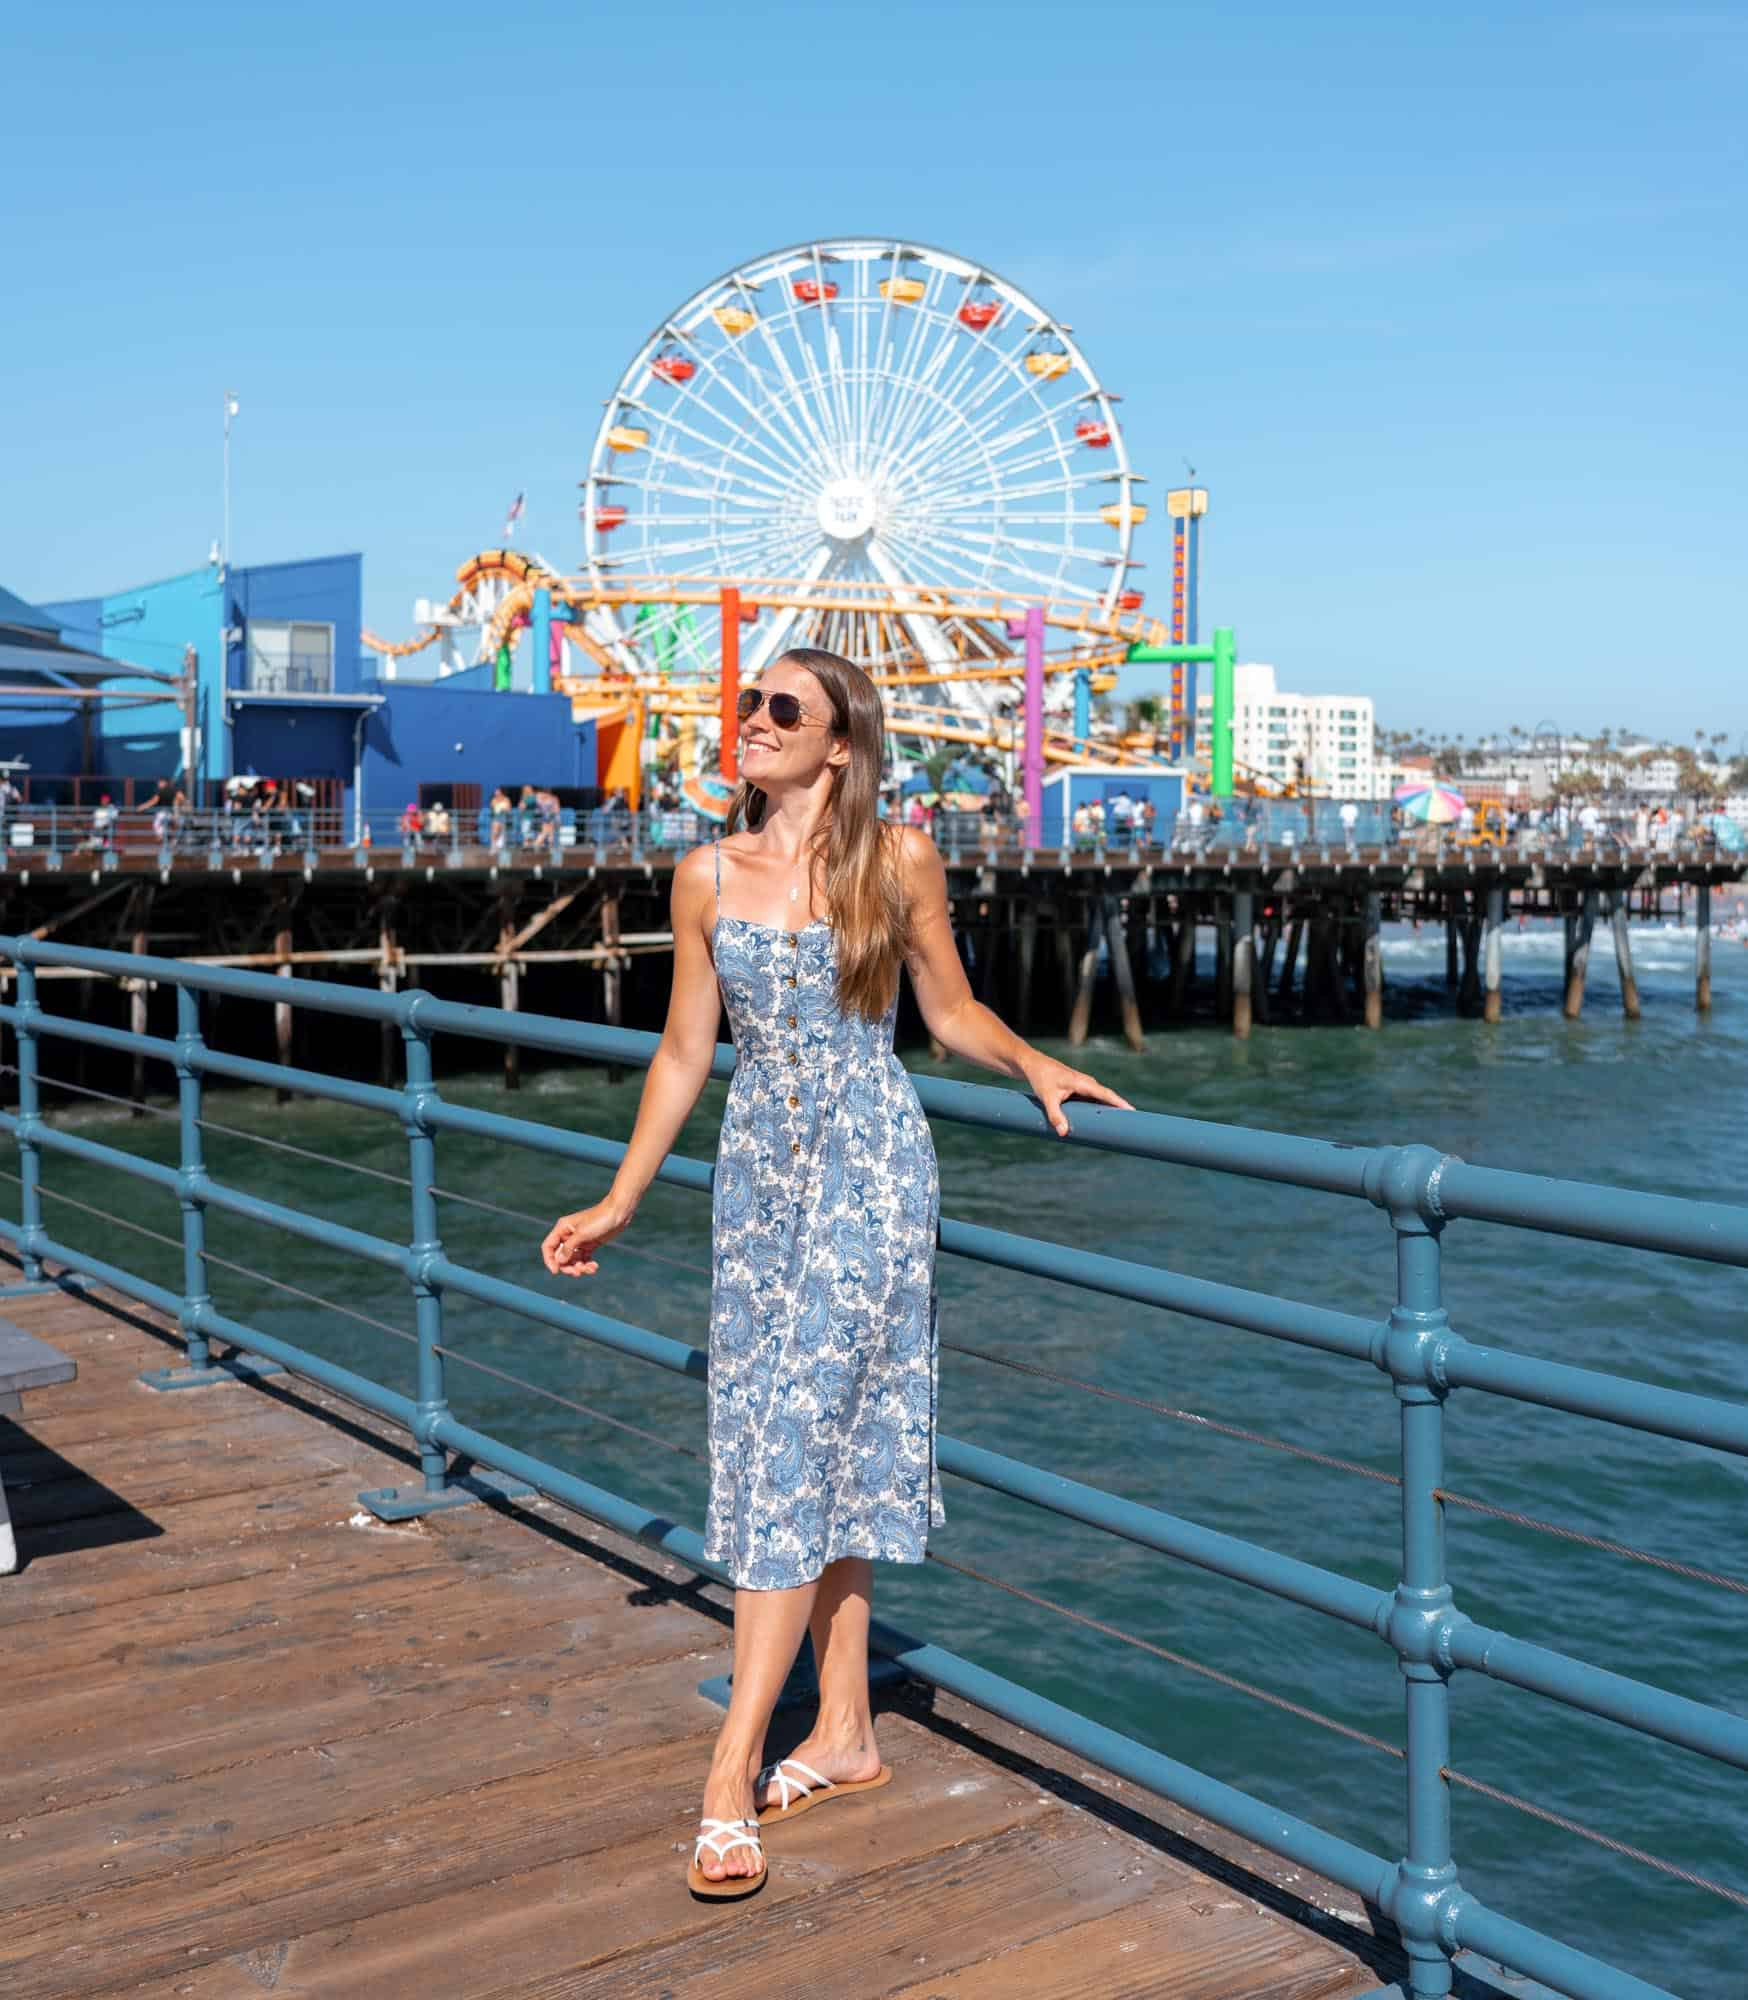 Travels of Sophie at Santa Monica Pier with Ferris wheel in the background